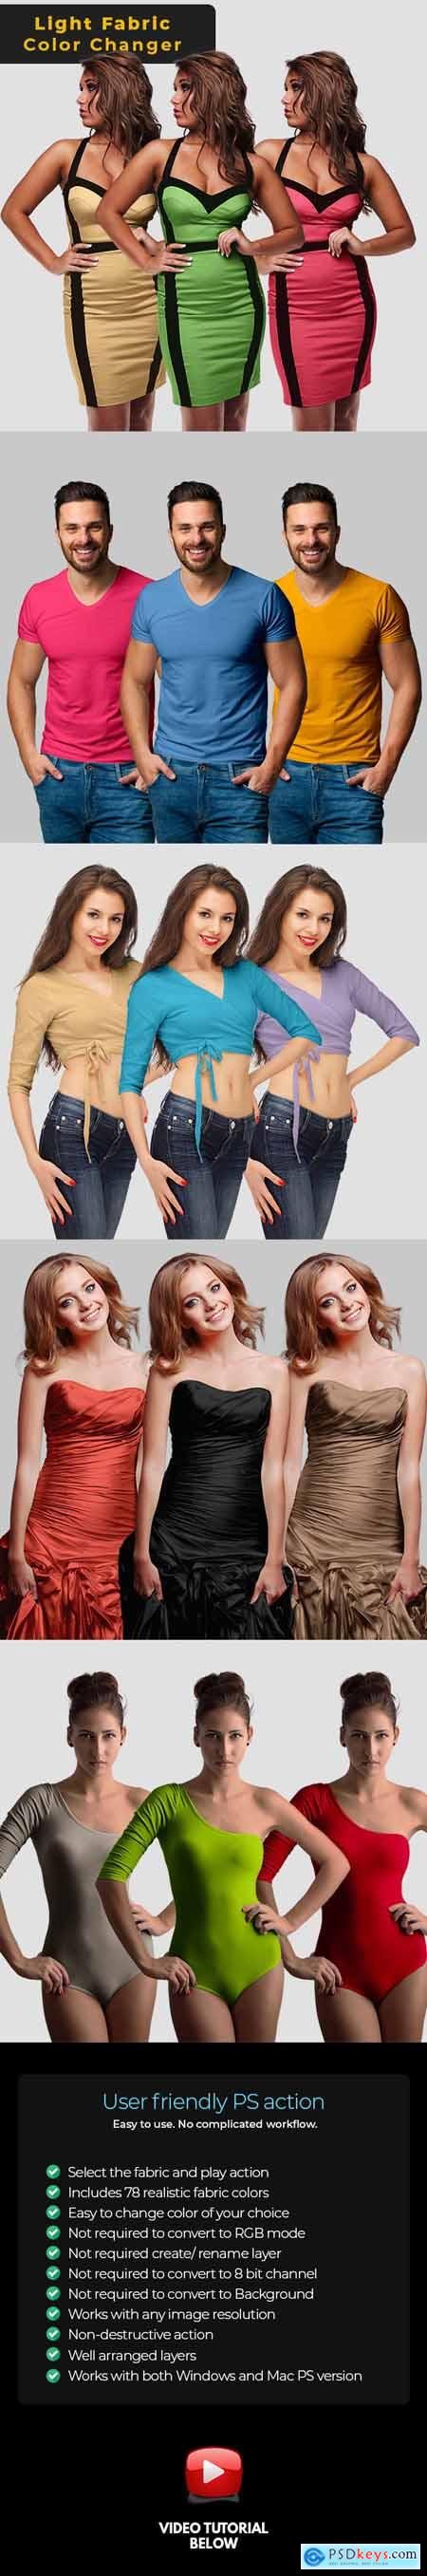 Light Fabric Color Changer - Photoshop Action 26003619